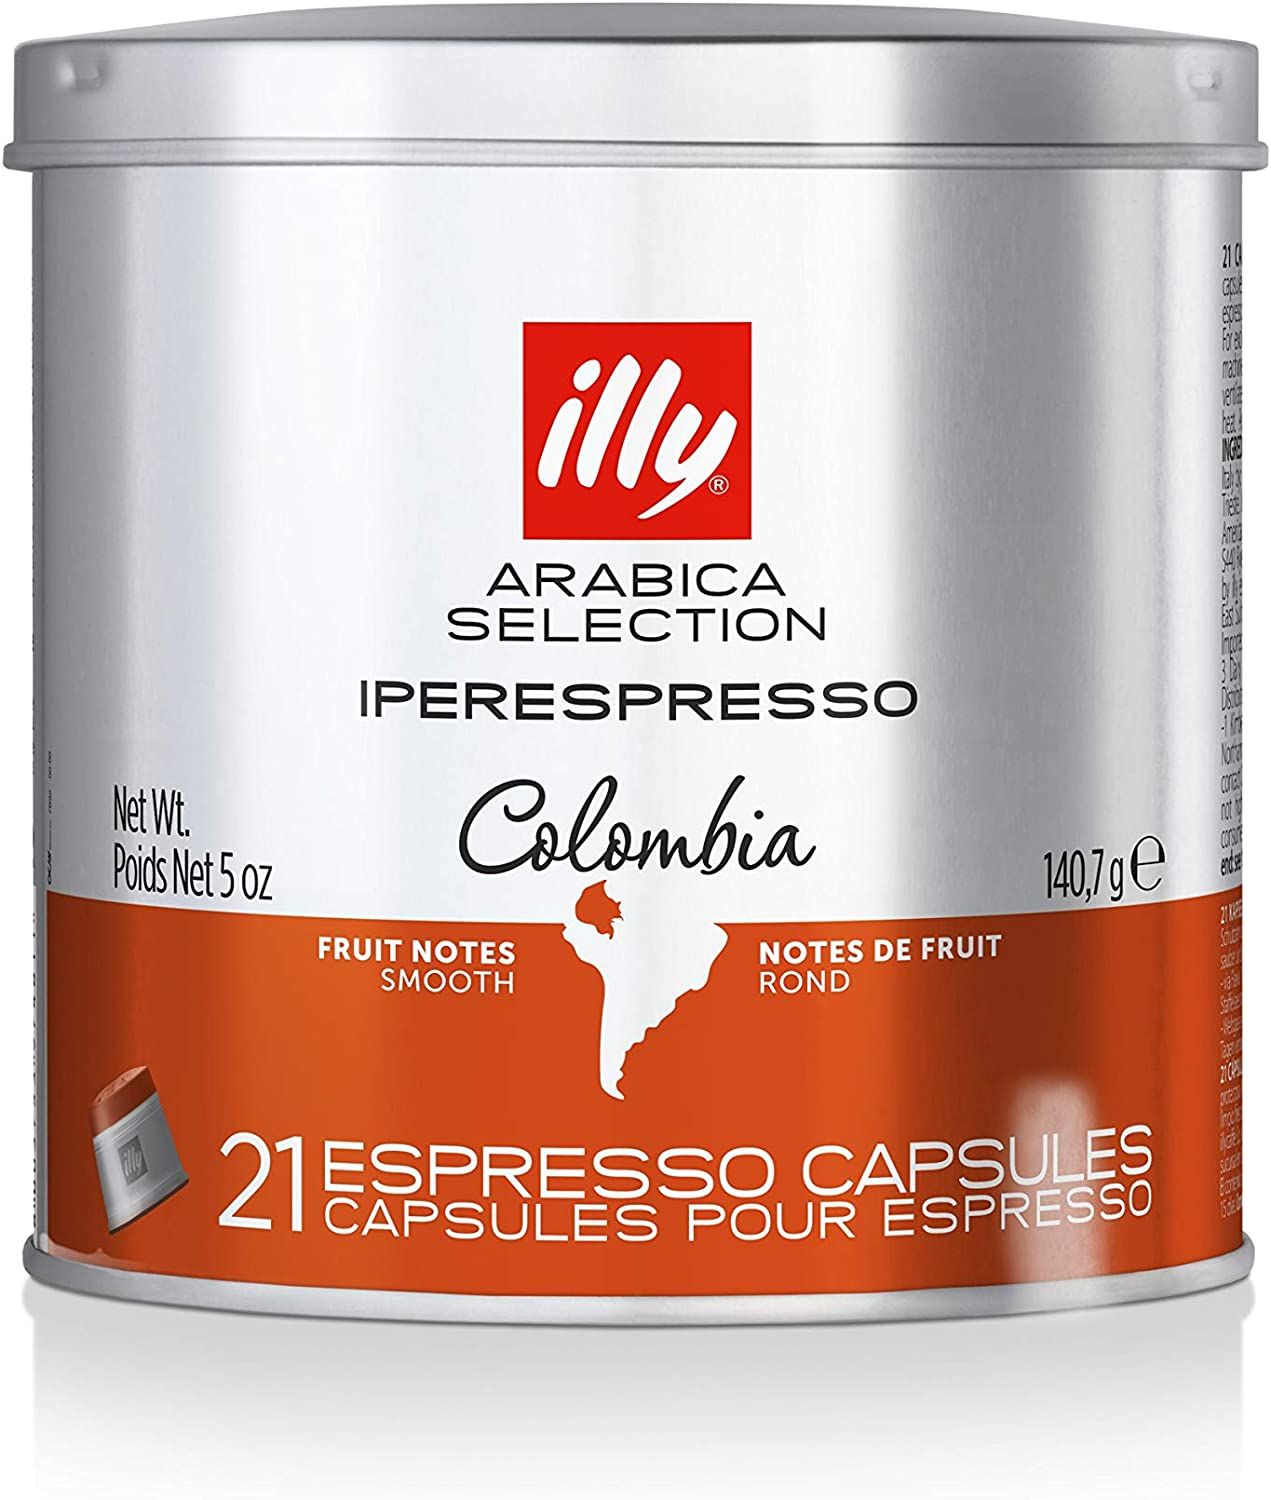 Illy iperEspresso Capsules Arabica Selection Colombia - 21 Single Serve Capsules (Casepack of 6 Cans)